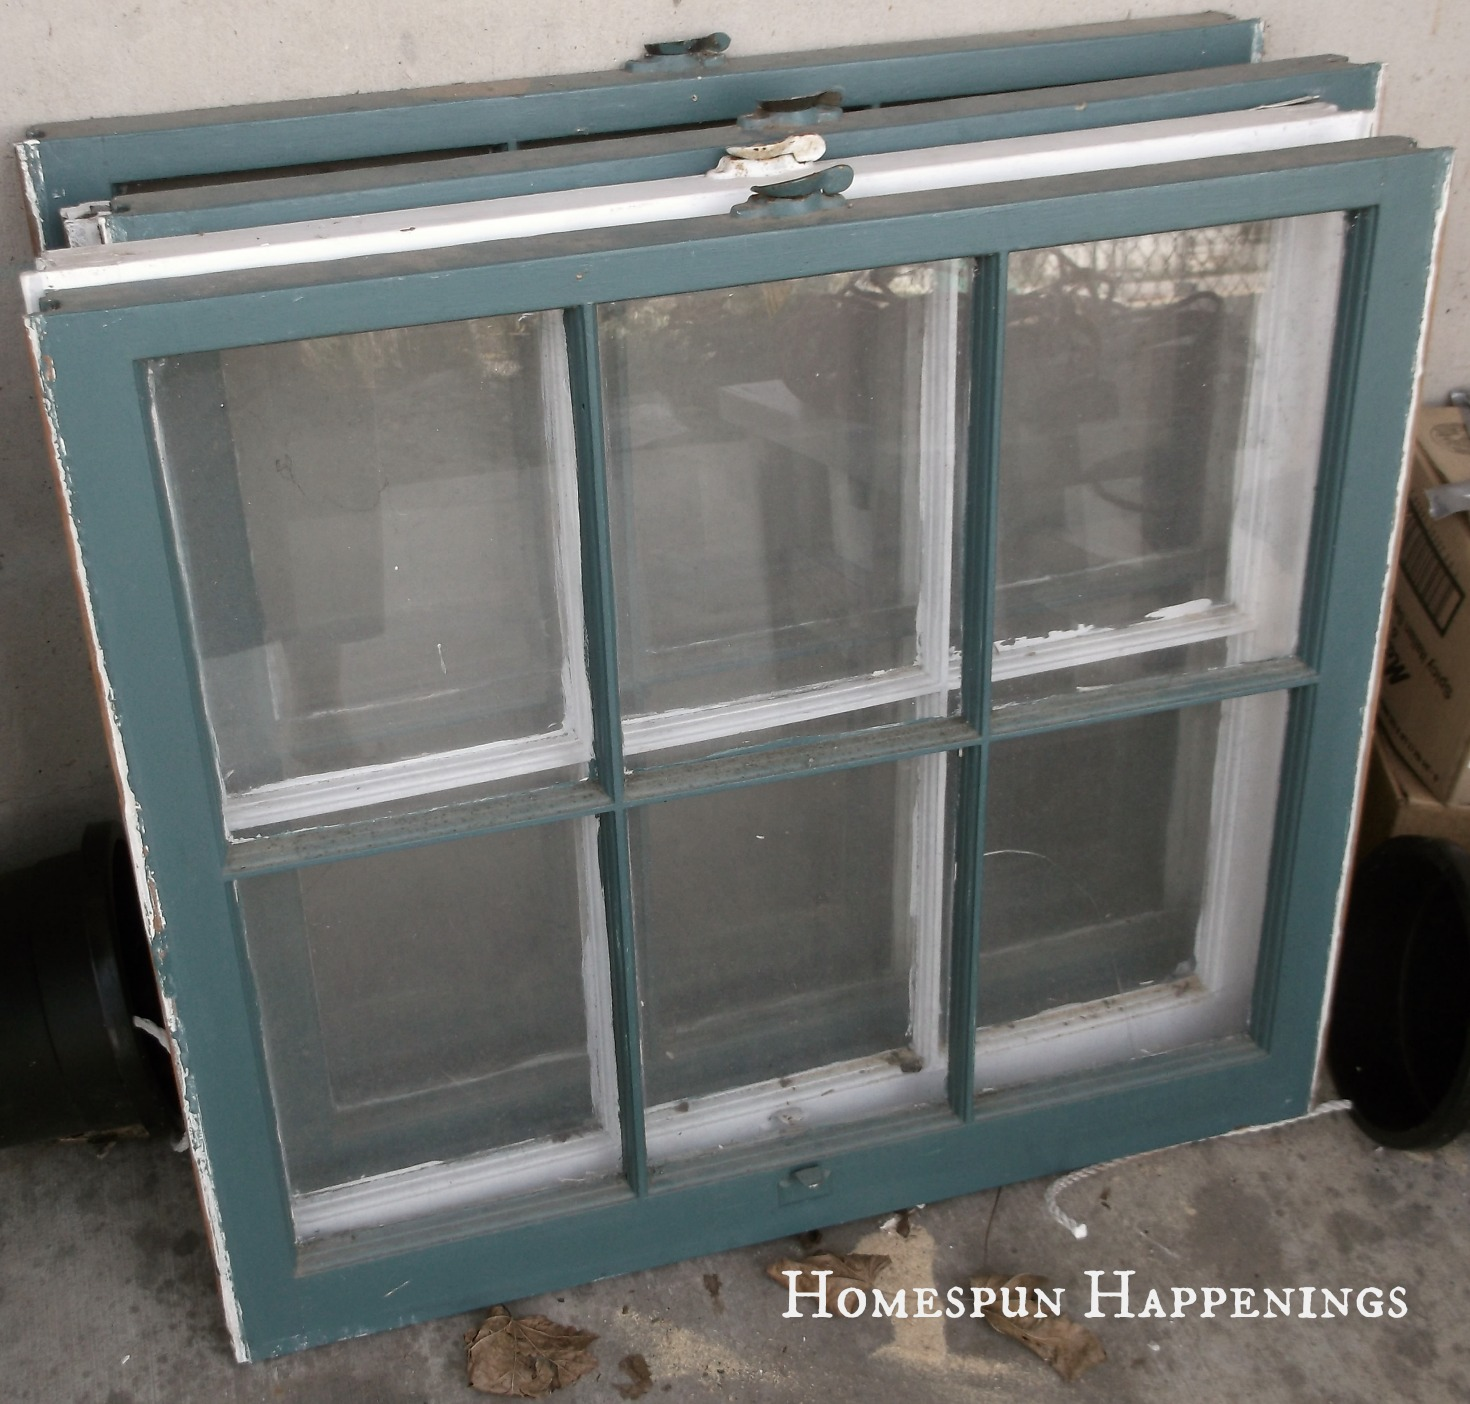 Replacing Kitchen Cabinet Hinges Homespun Happenings Diy Greenhouse Out Of Old Windows